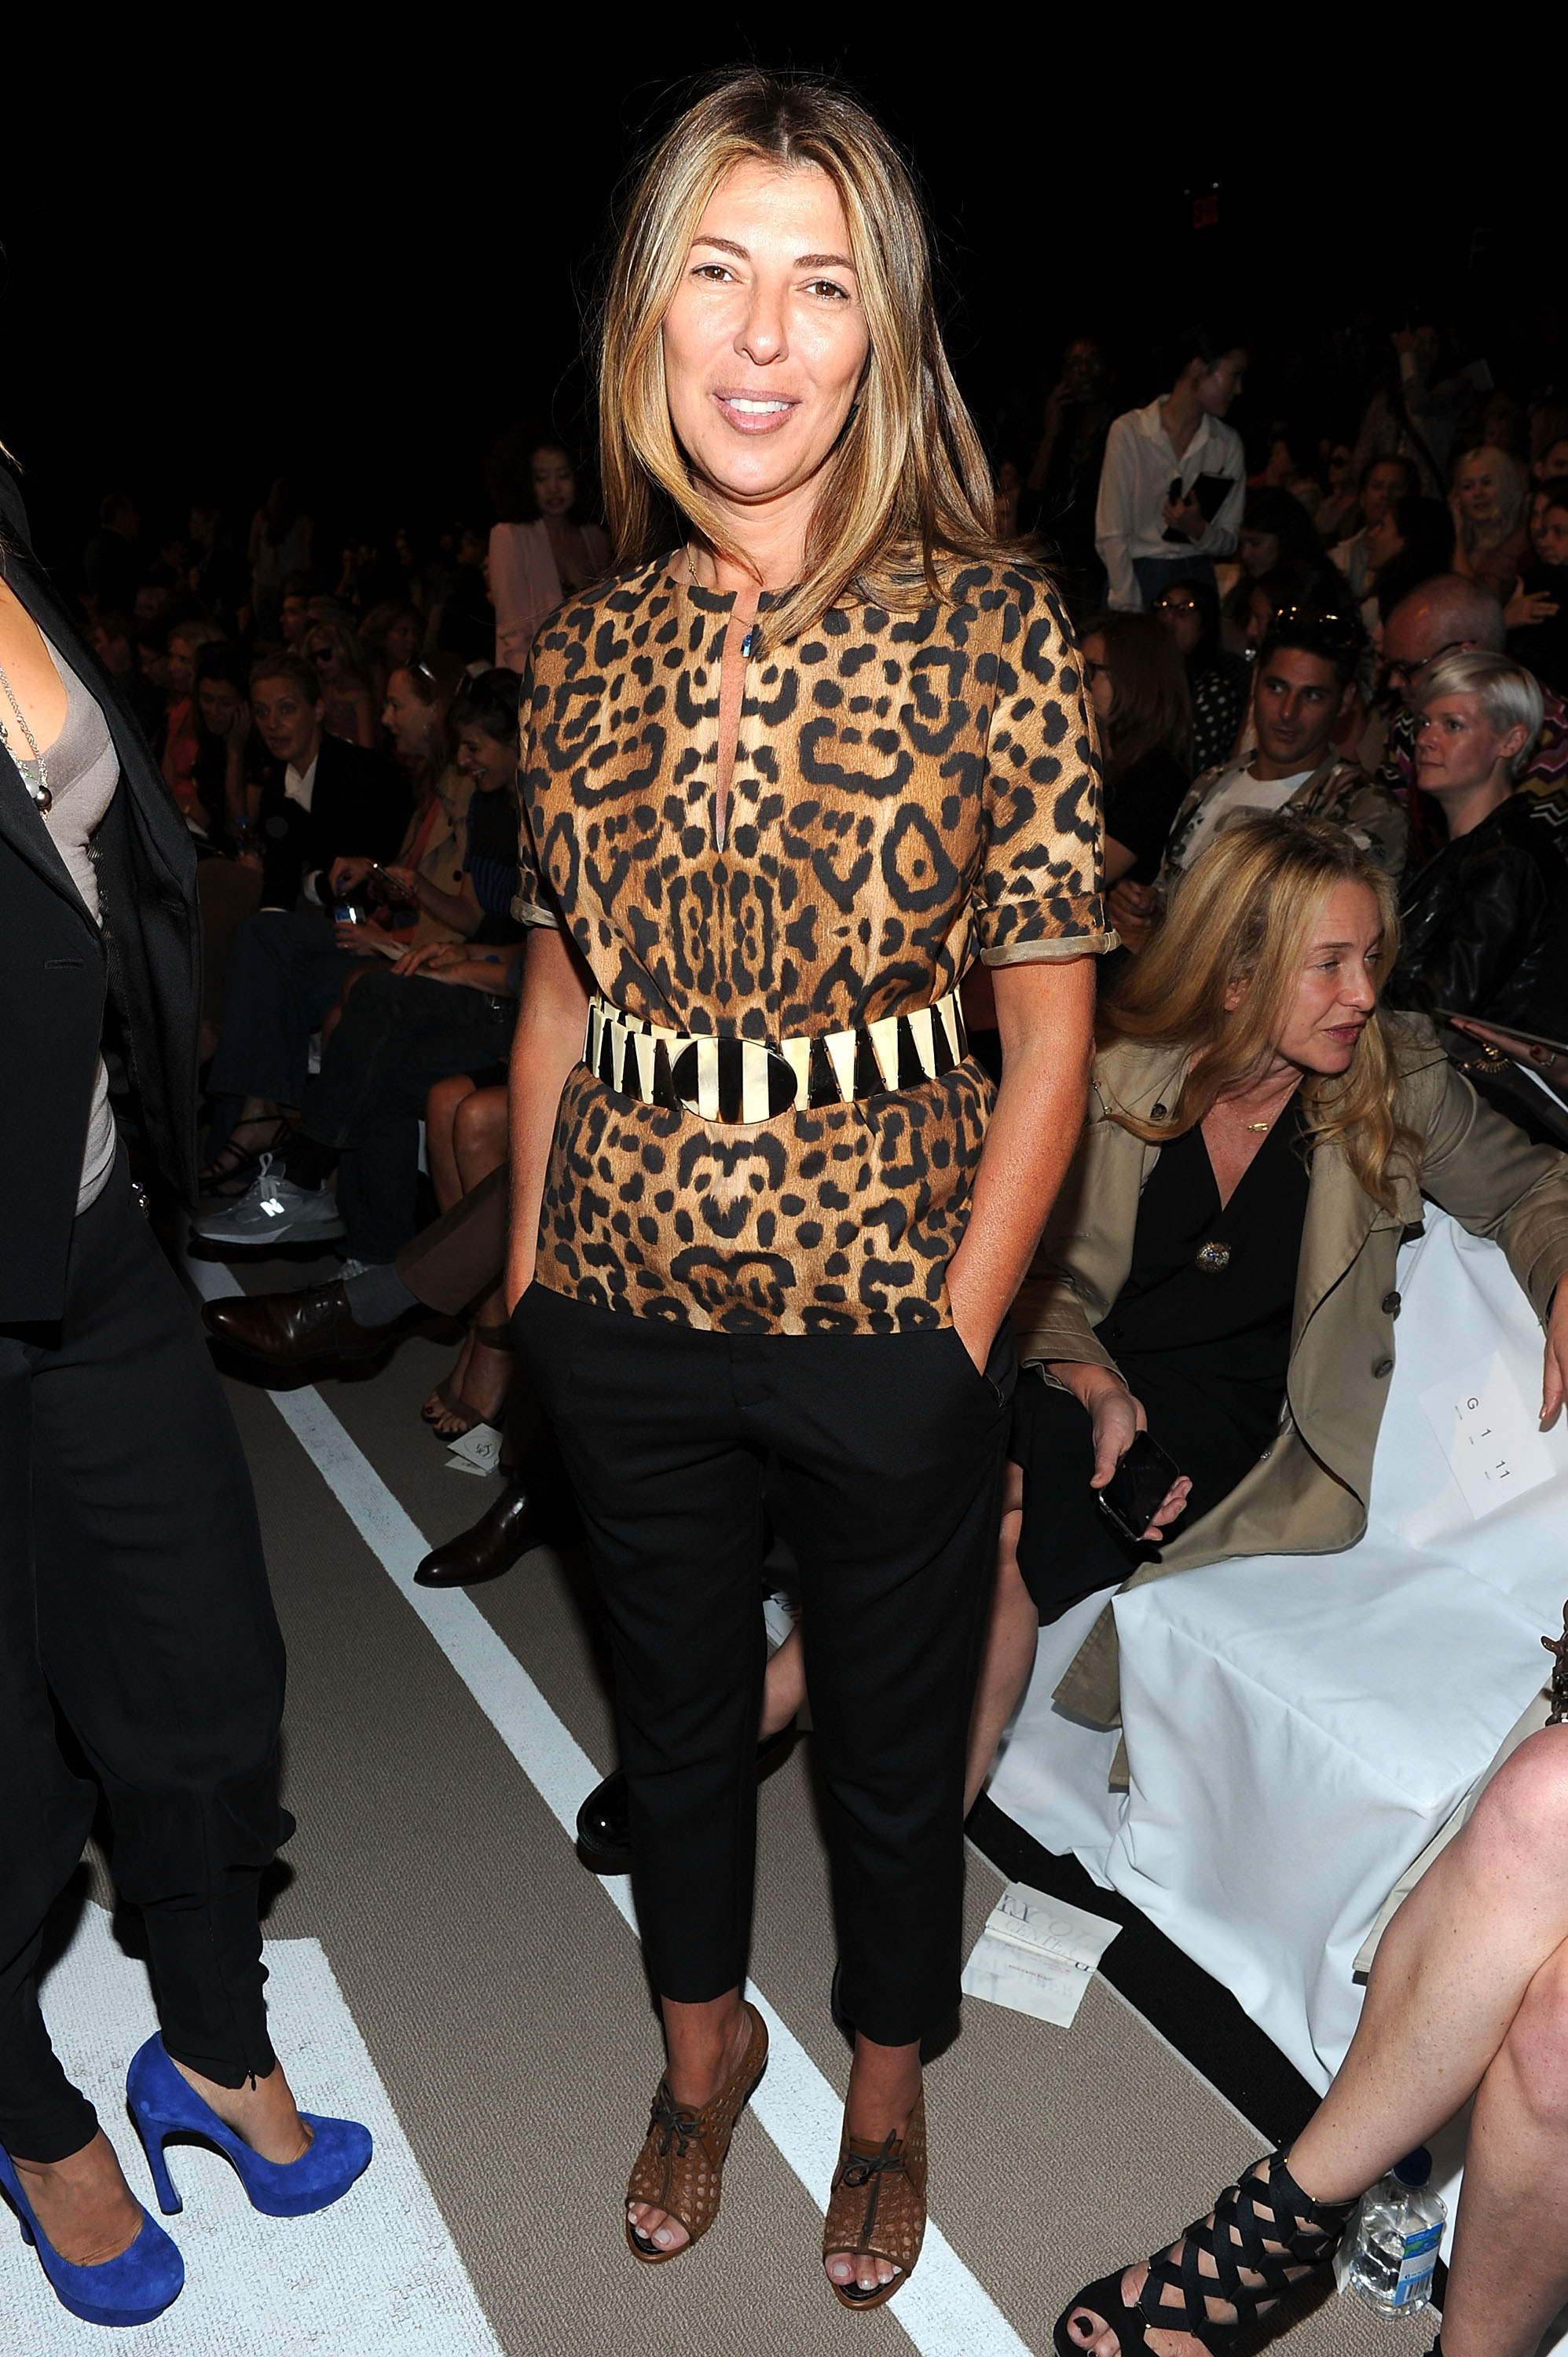 NEW YORK, NY - SEPTEMBER 11: Nina Garcia attends the Diane Von Furstenberg Spring 2012 fashion show during Mercedes-Benz Fashion Week at The Theater at Lincoln Center on September 11, 2011 in New York City. (Photo by Jason Kempin/Getty Images for Mercedes-Benz Fashion Week)